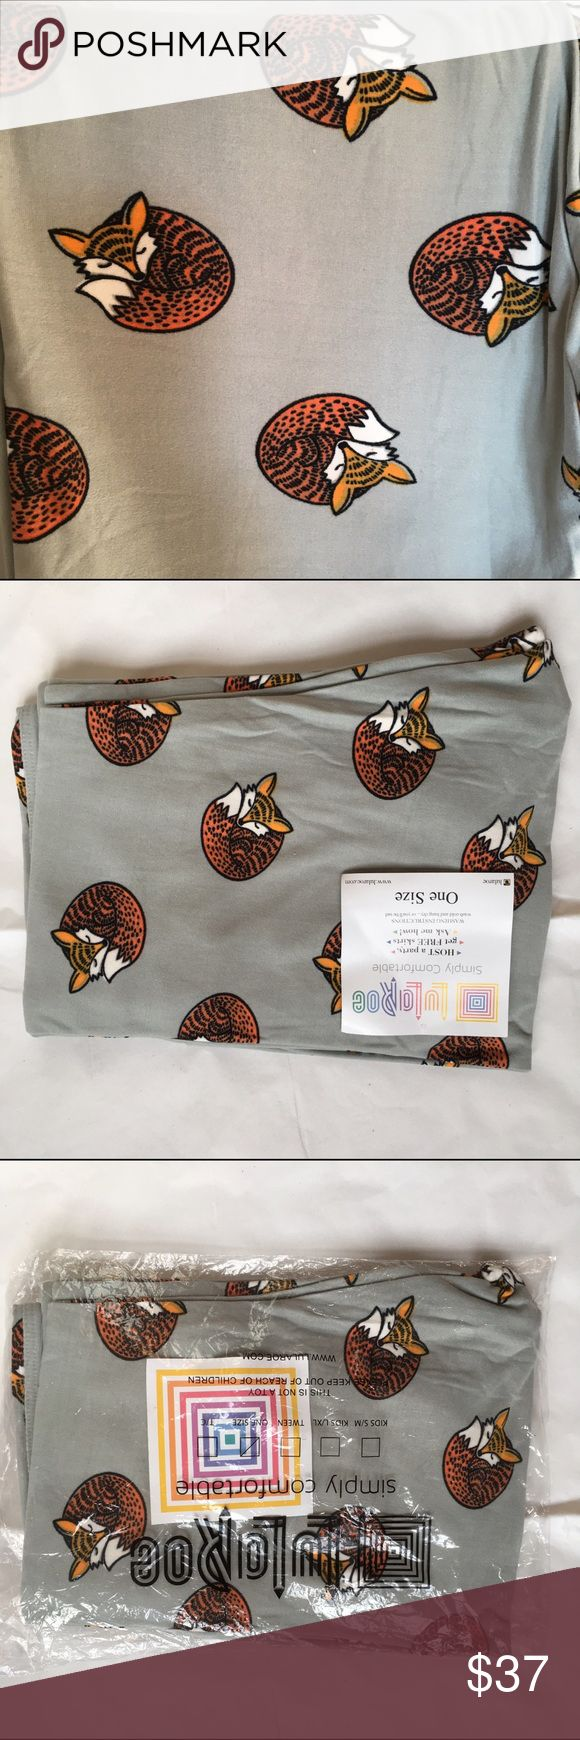 BNWT OS Lularoe Gray with Foxes Leggings UNICORN *Brand new with Tag and Bag Soft & Comfortable LuLaRoe Tall & Curvy Leggings* *Only Taken Out to Take Pictures* Lularoe leggings are buttery soft, and they stay just like that if you wash per Lularoe instructions. The fabric stretches without becoming thin or showing the fabrics stretch lines, as you see with other brands. I unfortunately have to sell all of my Lularoe clothes that I have not worn due to losing my job.Look at my other…